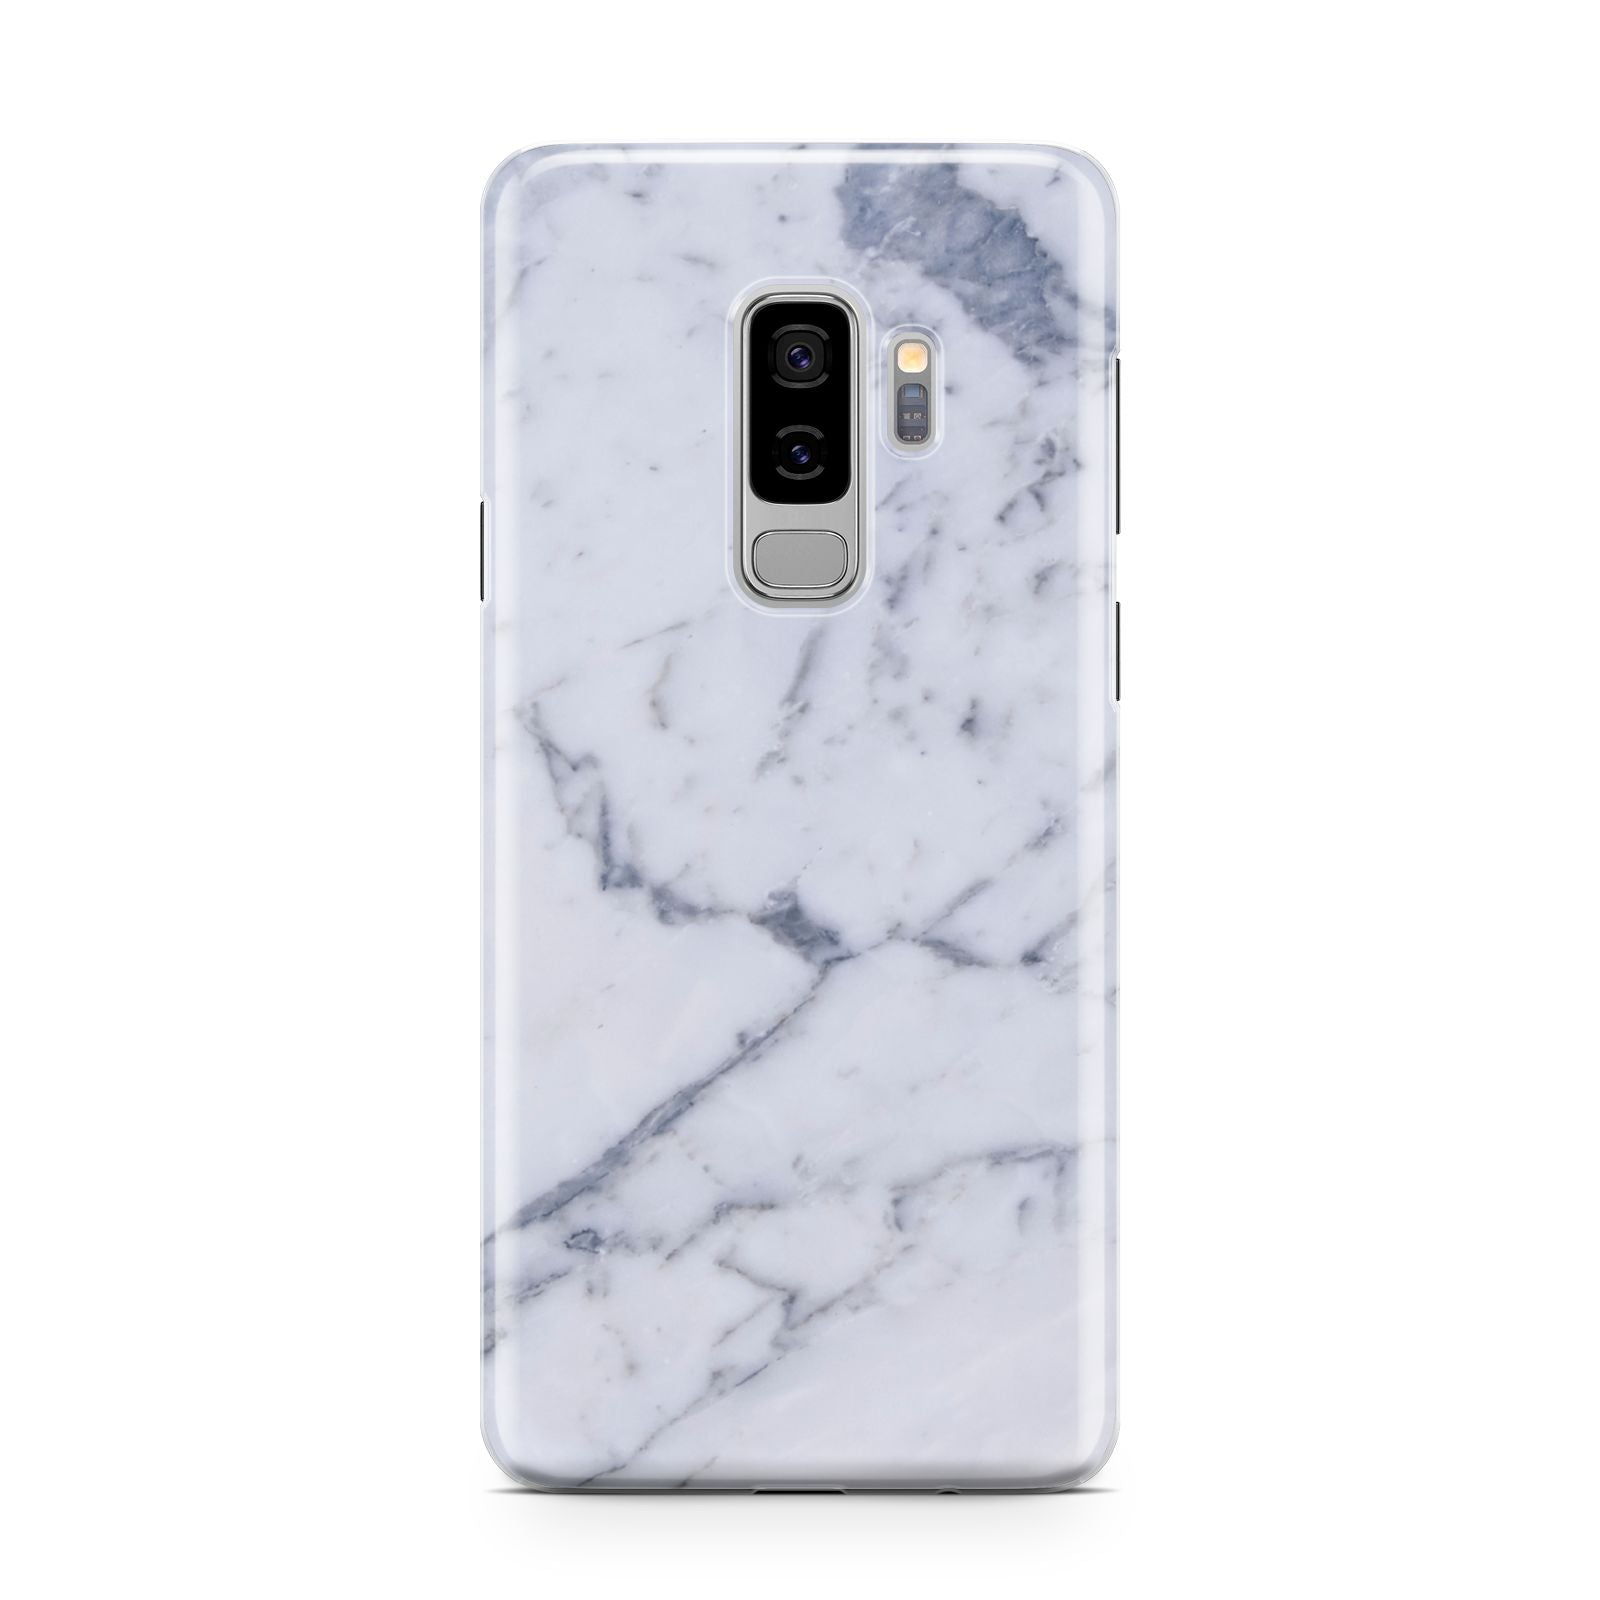 Faux Marble Grey White Samsung Galaxy S9 Plus Case on Silver phone